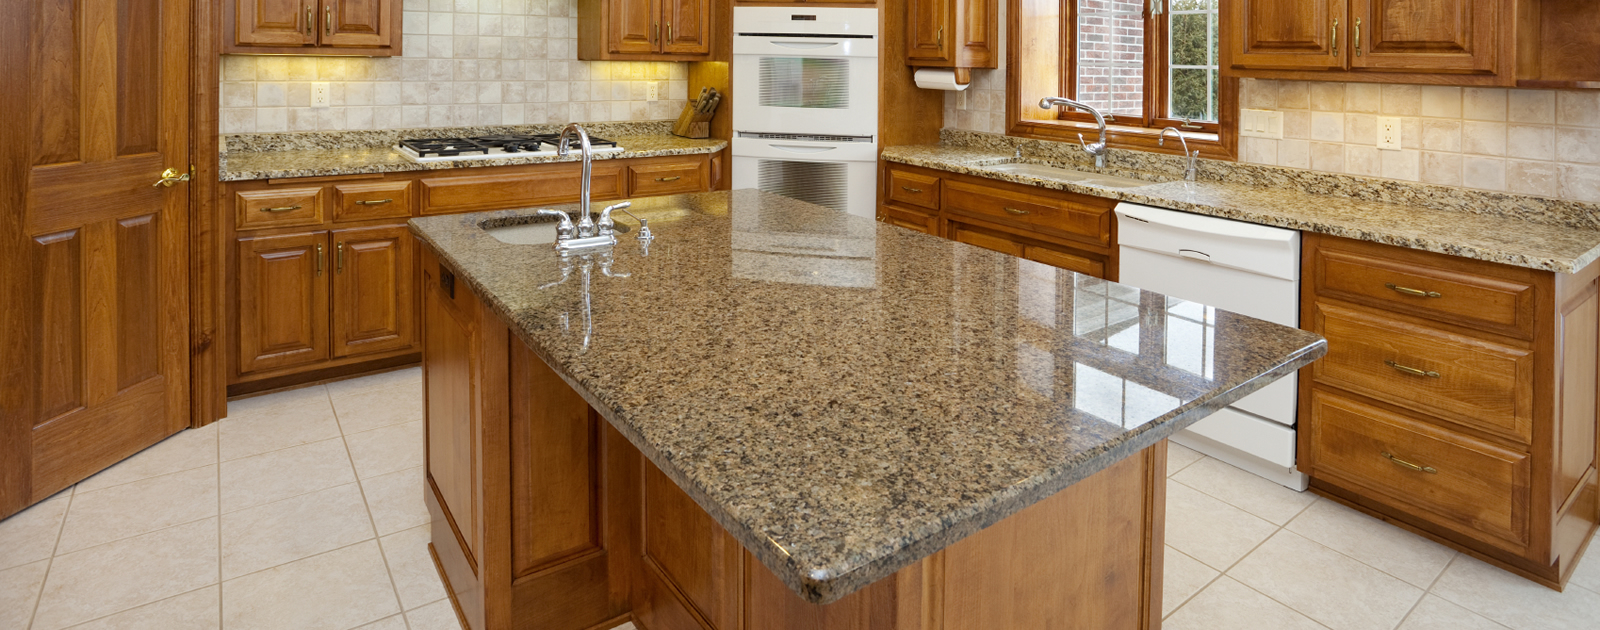 comparing natural stone countertops kitchen countertop materials granite countertop